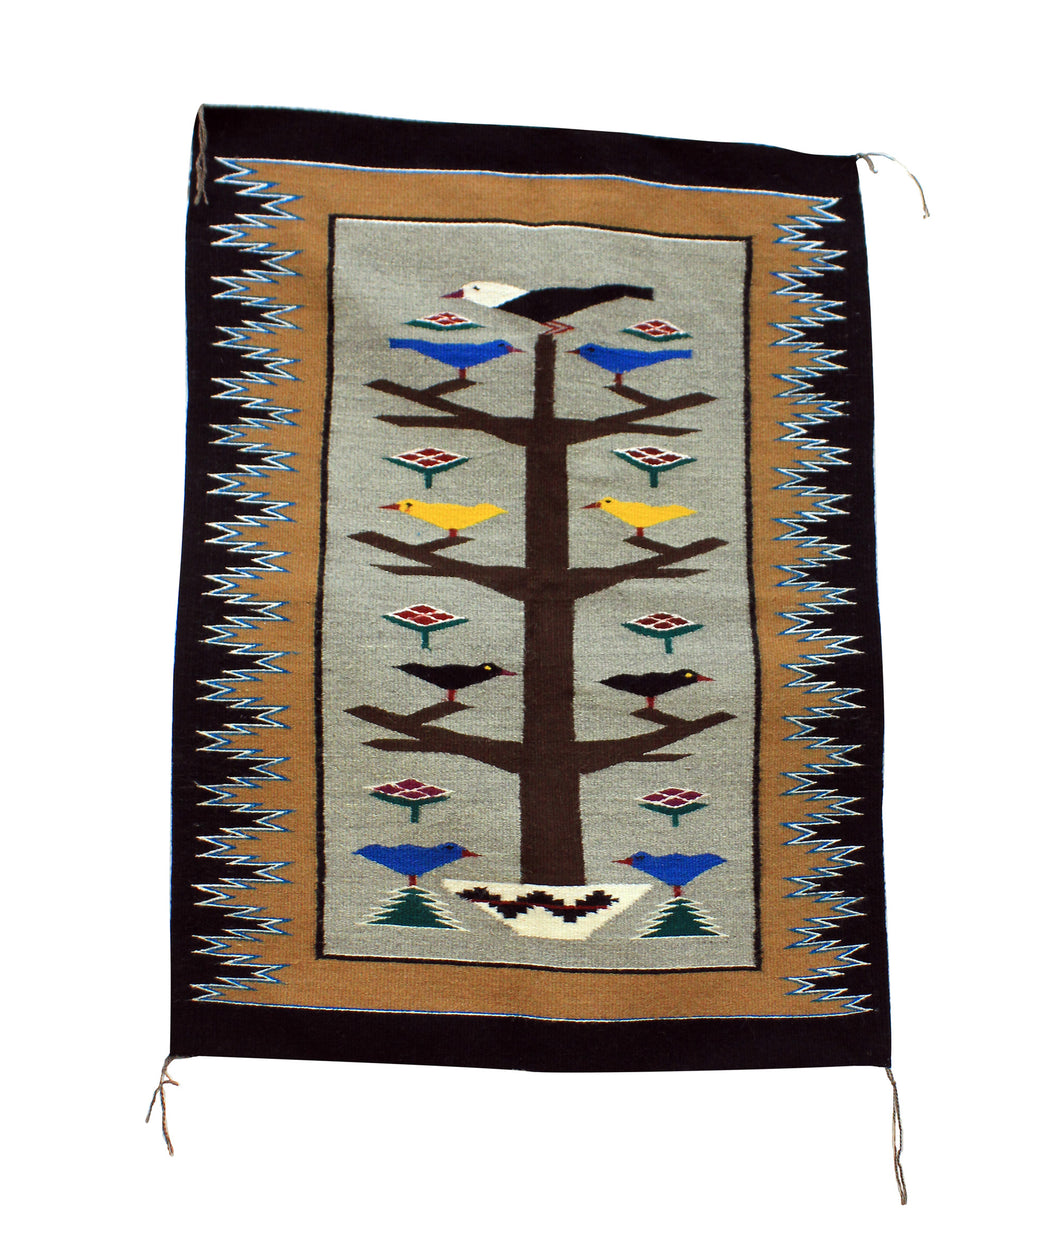 Alice Grey, Tree of Life, Rug, Navajo, Handwoven, 35.5